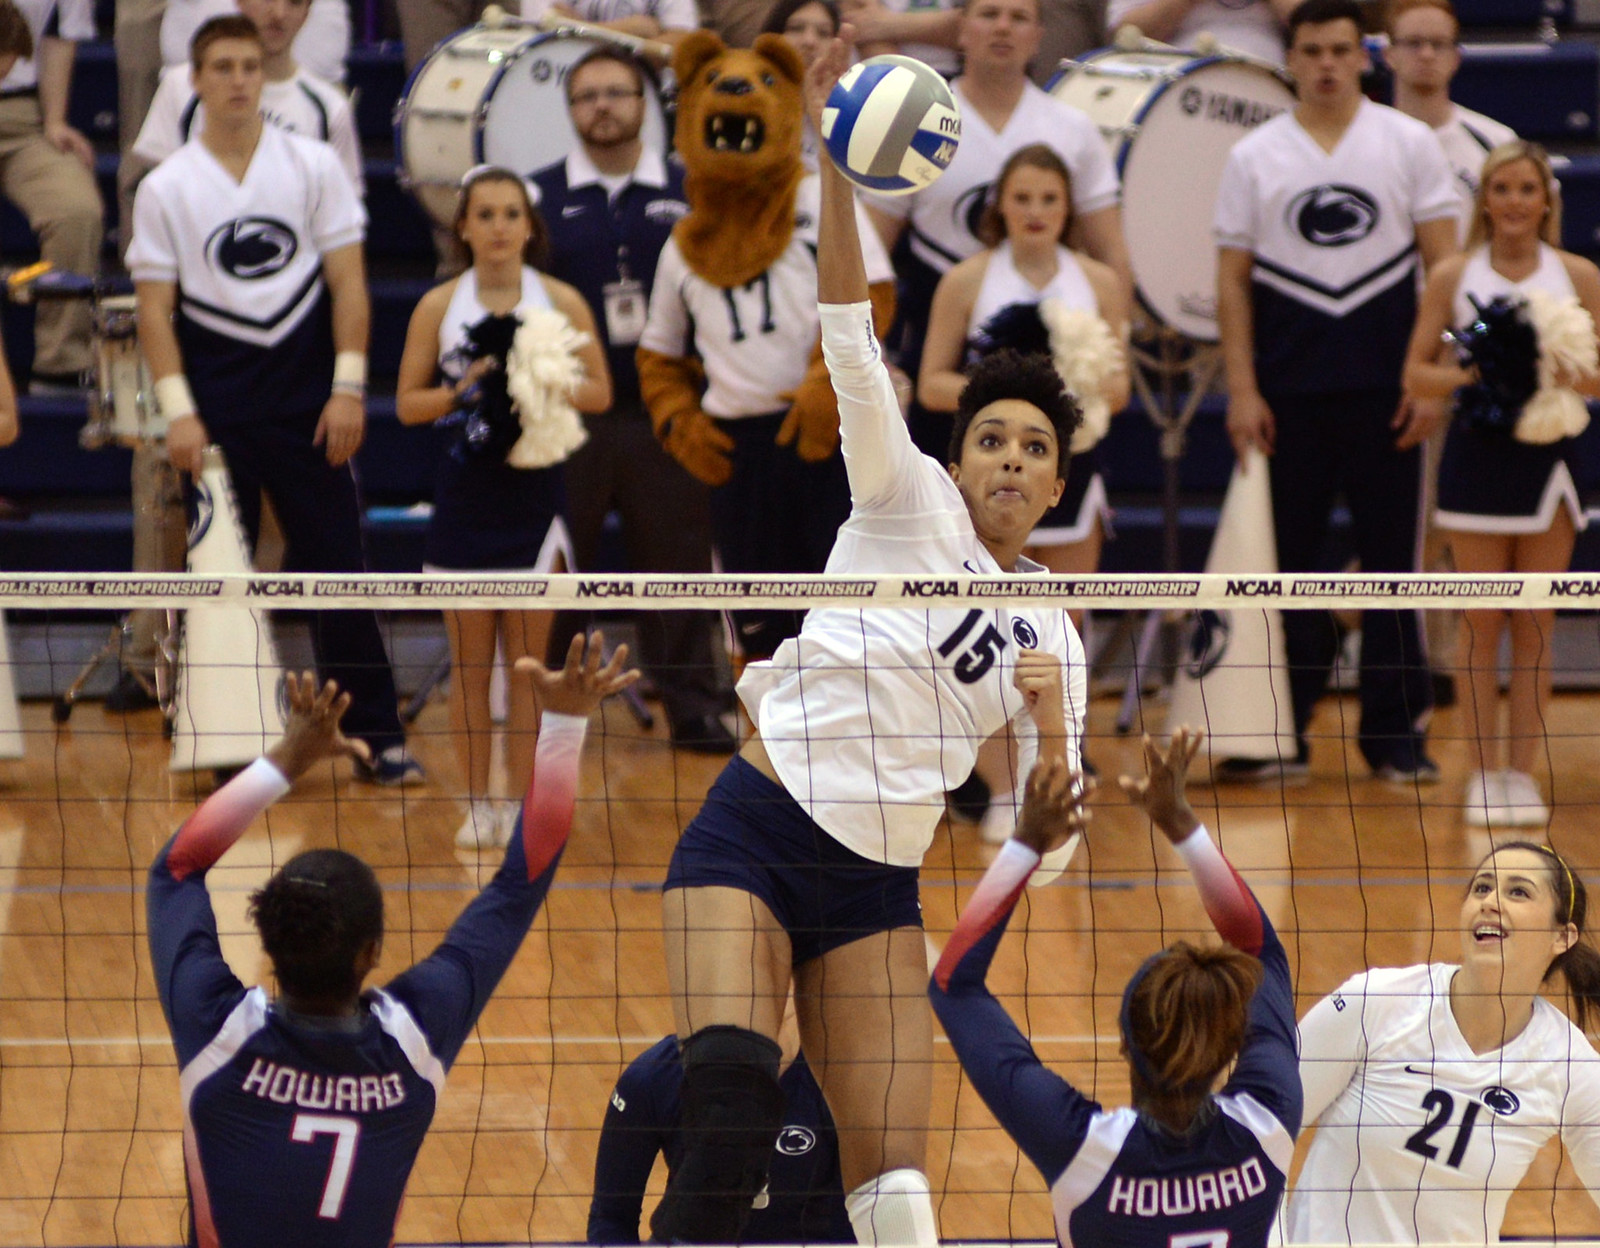 Types of Volleyball Hits - To spike a ball a player takes a spike approach then uses an armswing to contact the ball in the air to propel it over the net into the opposing court. (Ralph Arvesen)